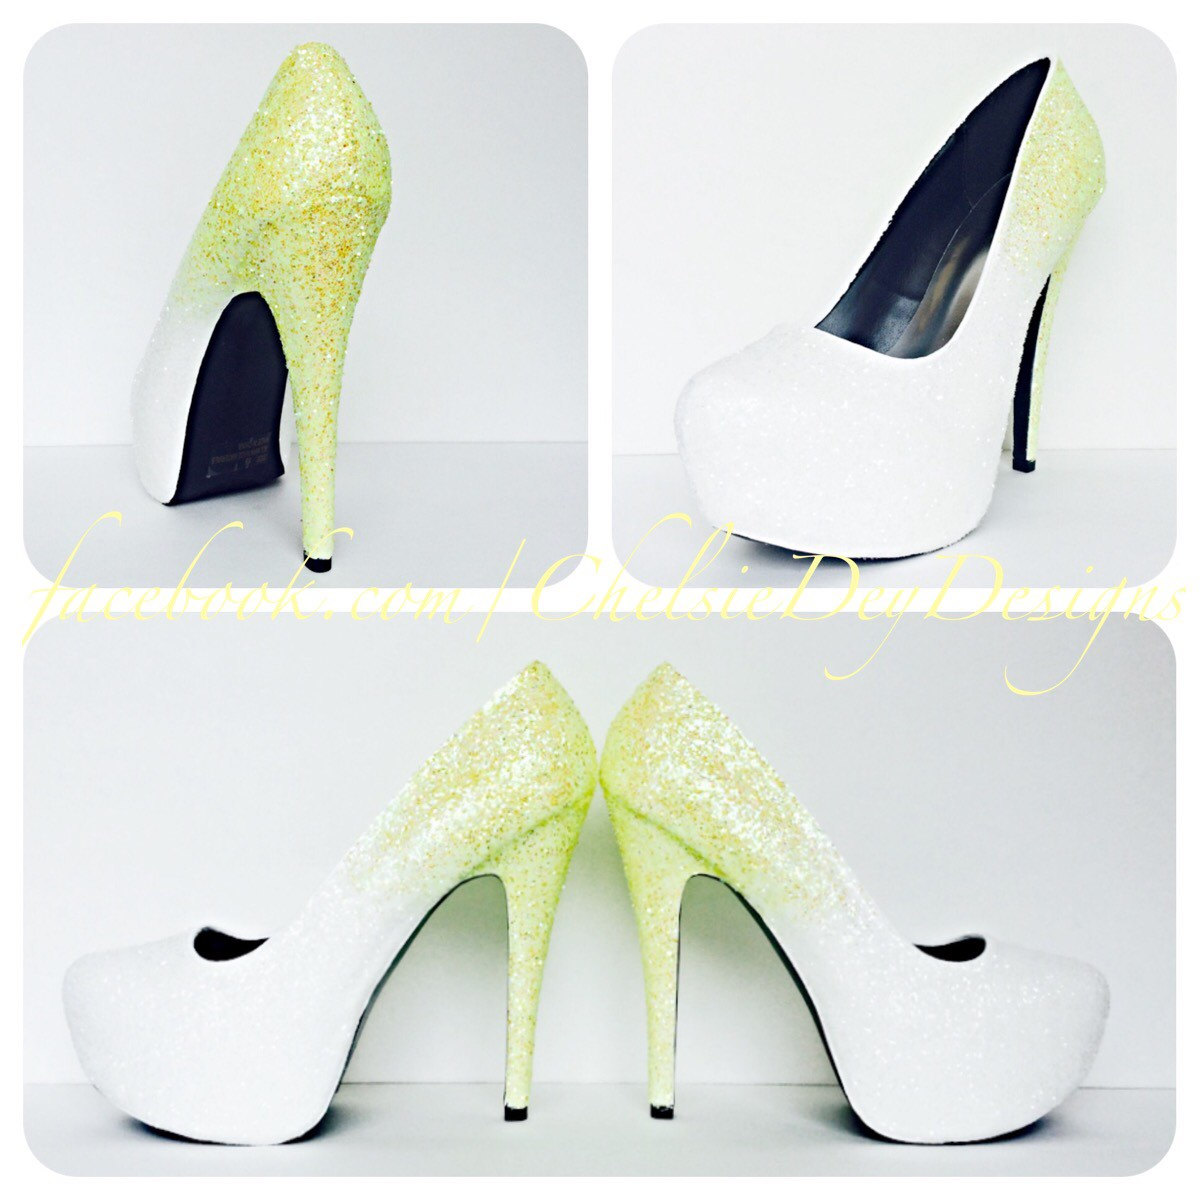 Glitter High Heels - Yellow White Ombre Pumps - Spakly Wedding ...